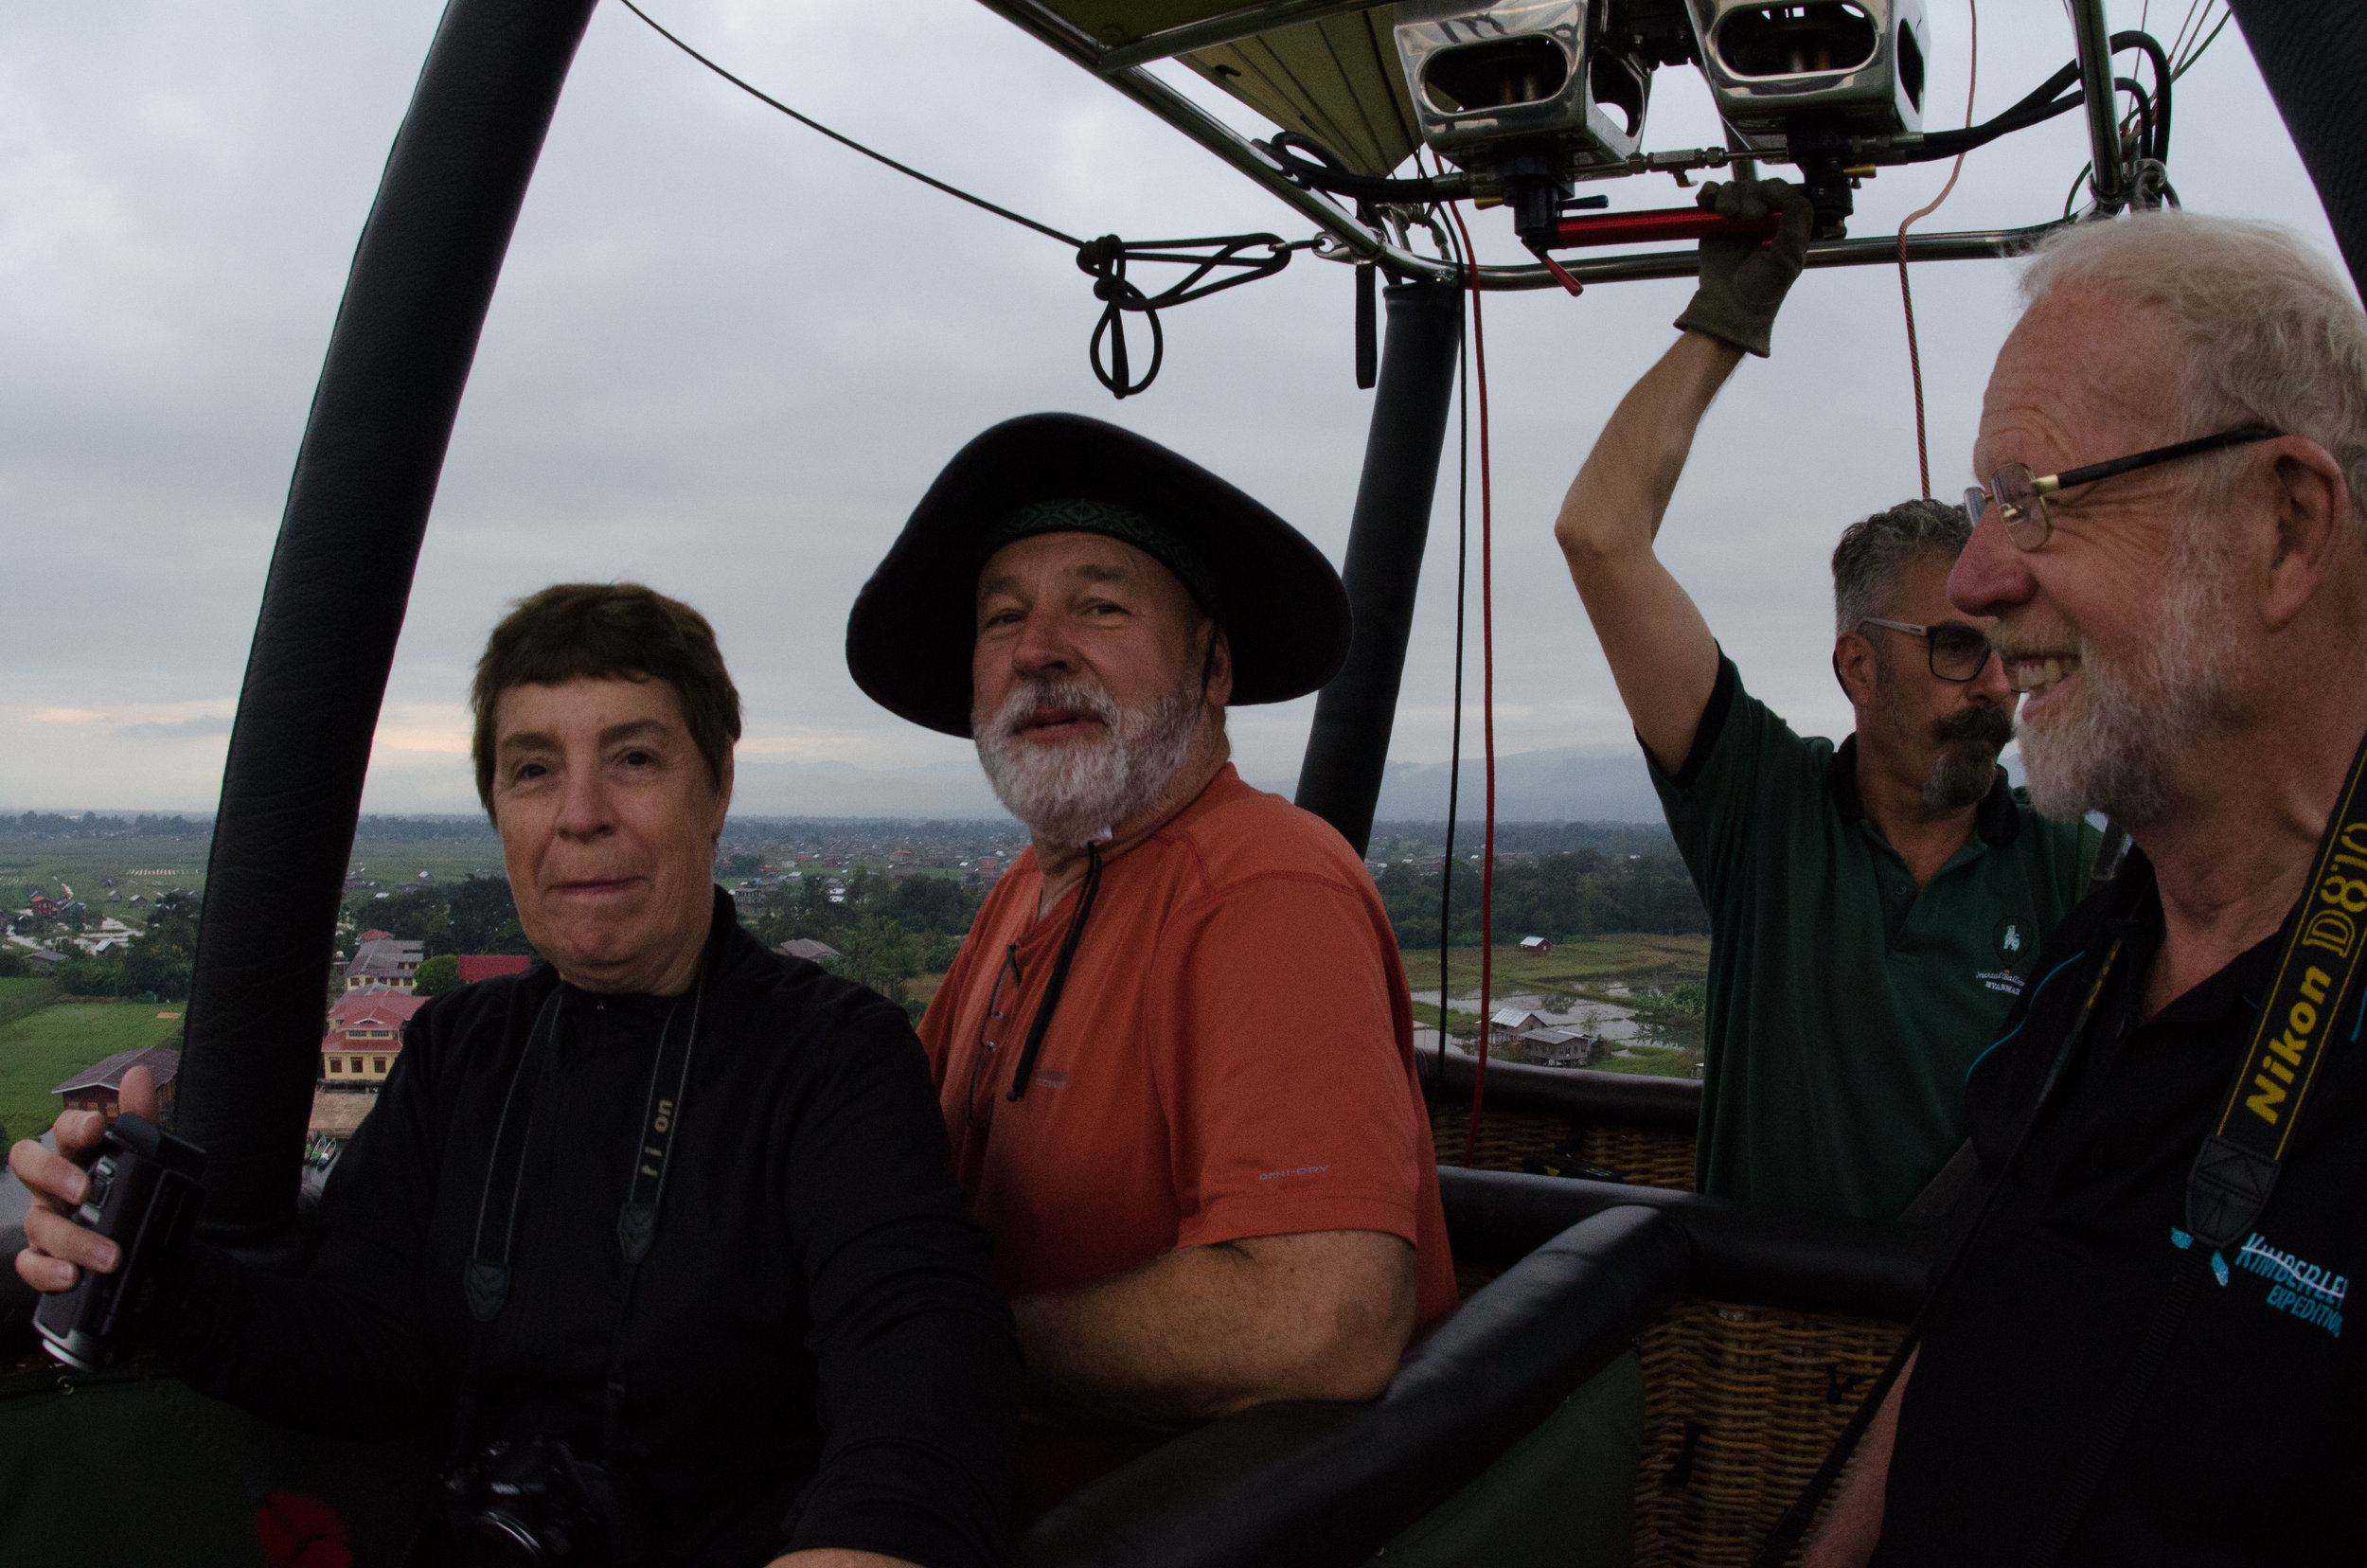 Diana, Chris, Nic & Tony in hot-air balloon 001, Inle Lake, Myanmar, 22 Nov 2017.jpg